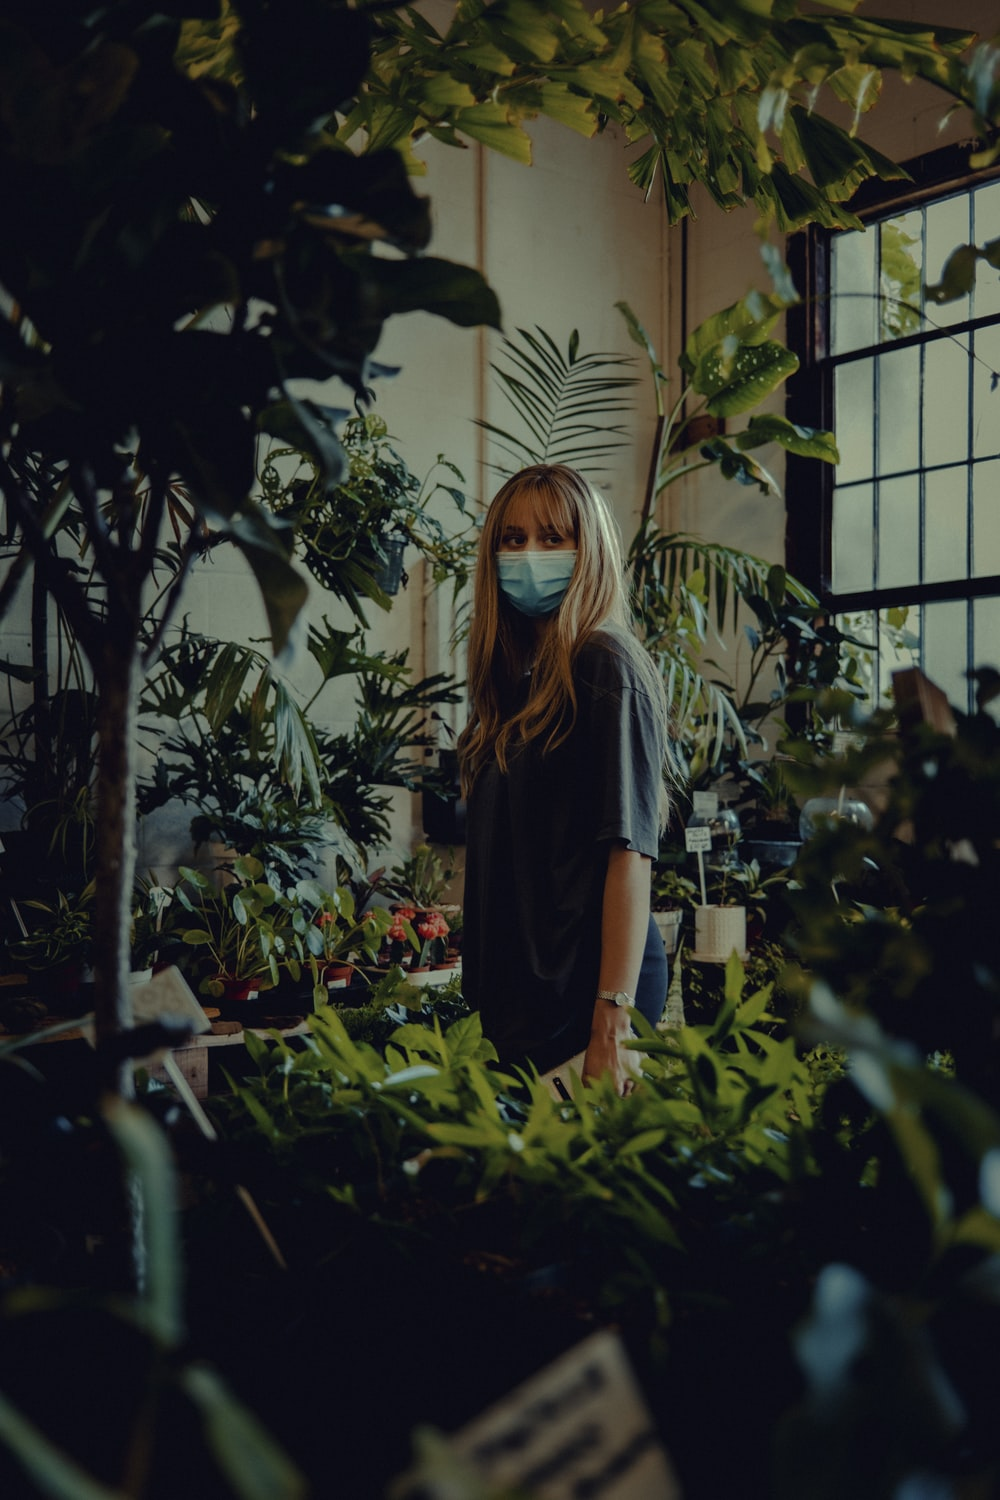 woman in black crew neck t-shirt standing near green plants during daytime